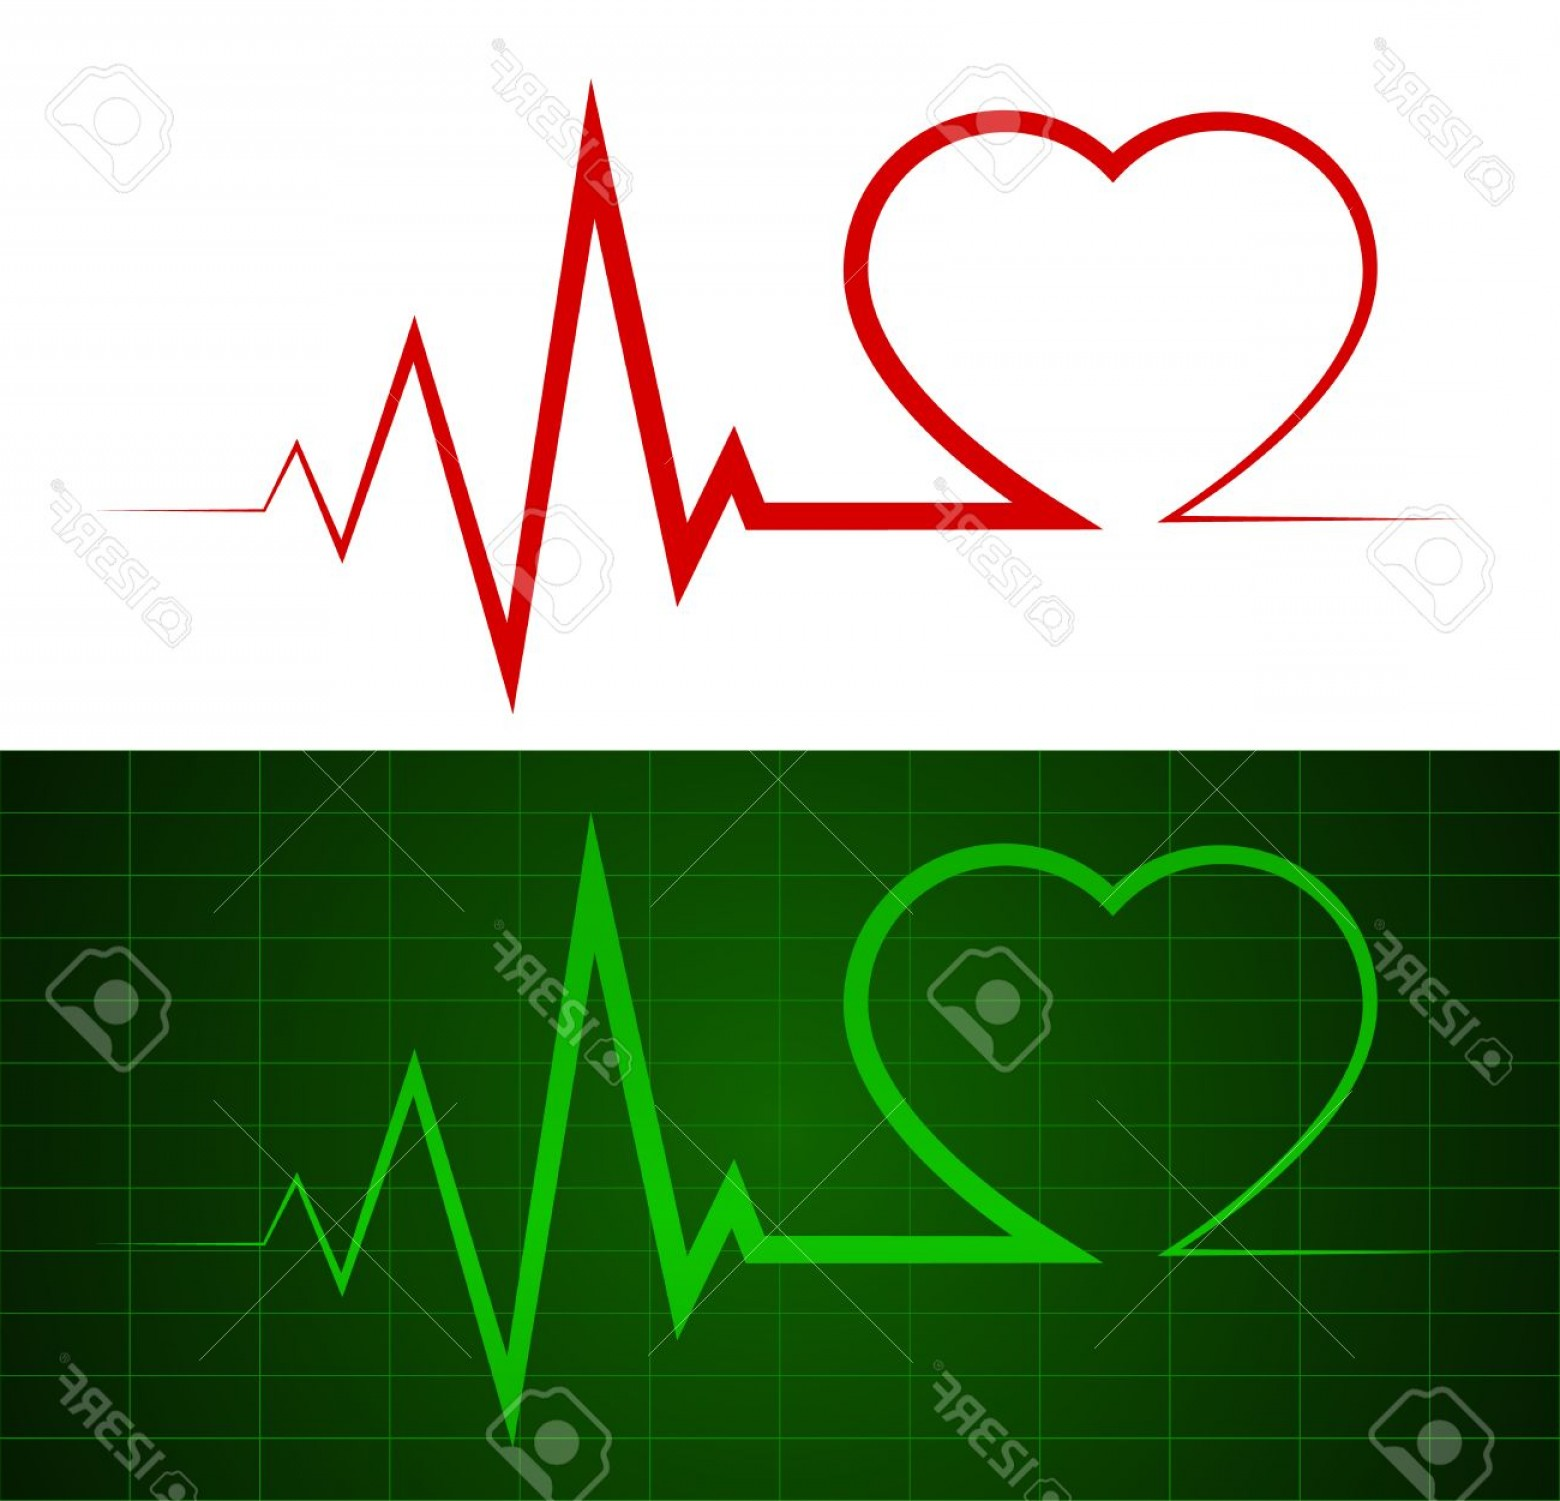 Heart With EKG Line Vector: Photoheartbeat Ekg Line Illustrations Symbol Background